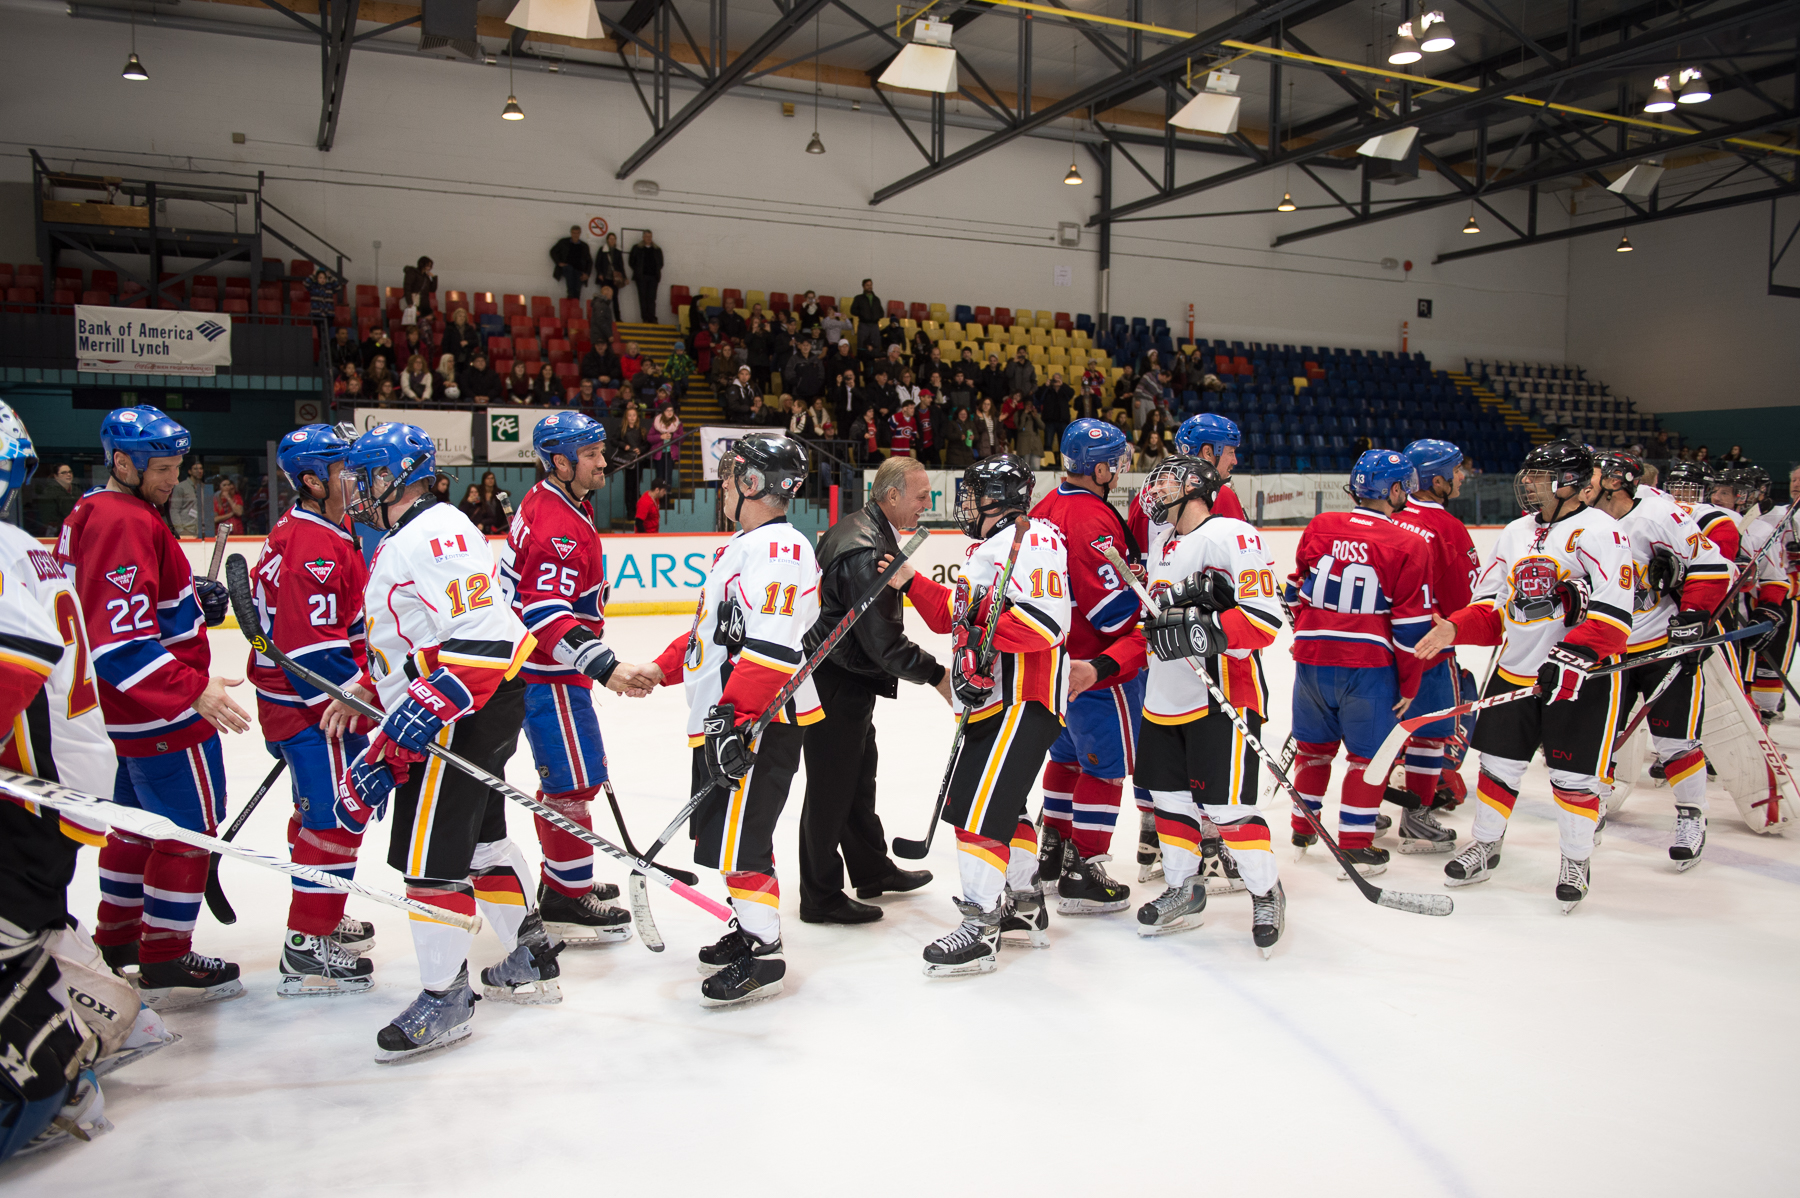 CN - Canadiens Alumni (Photo by CN)